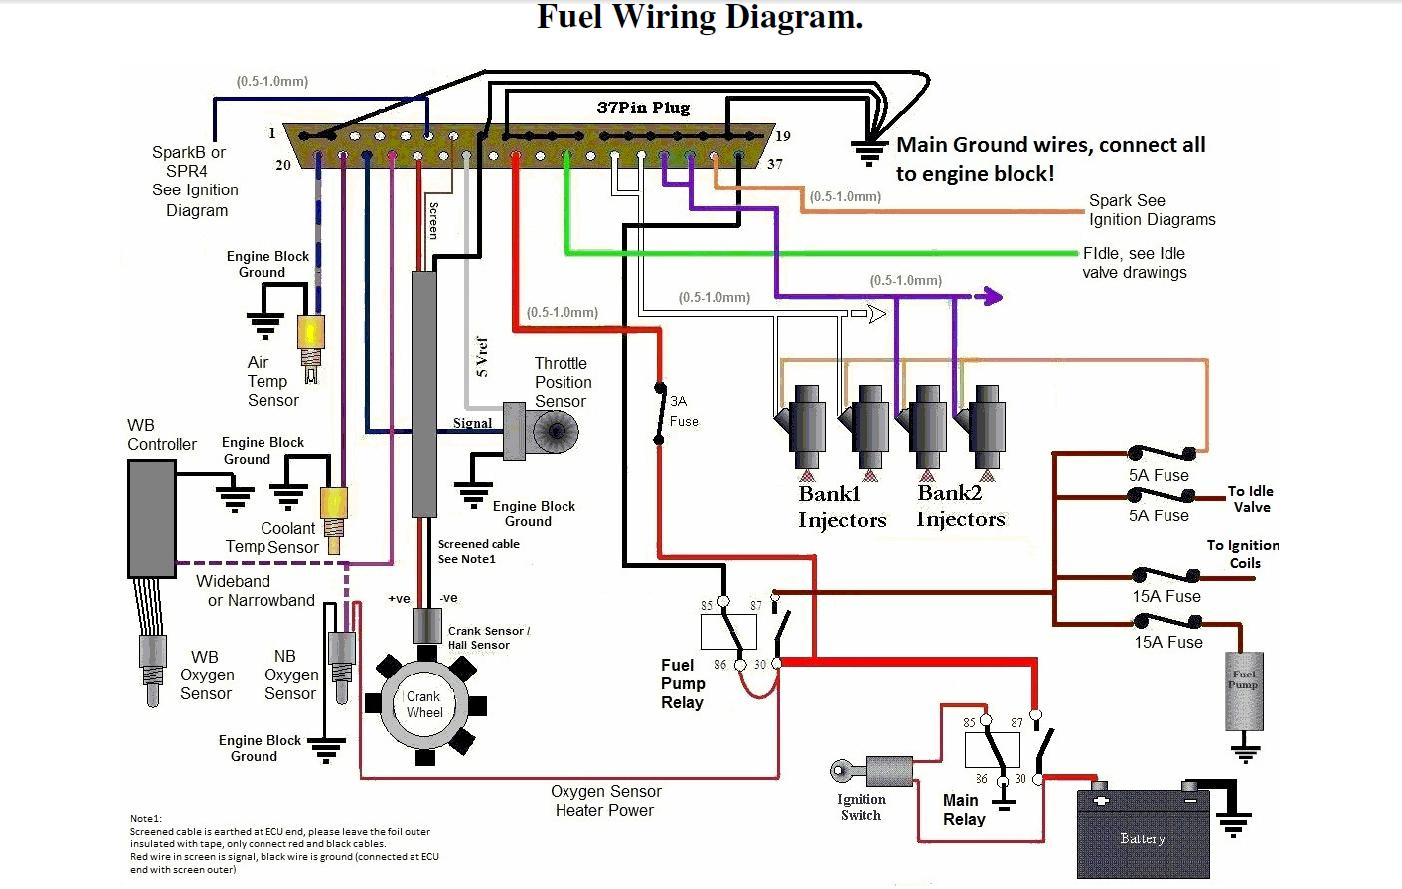 7.3 powerstroke glow plug wiring diagram - Wiring Diagram